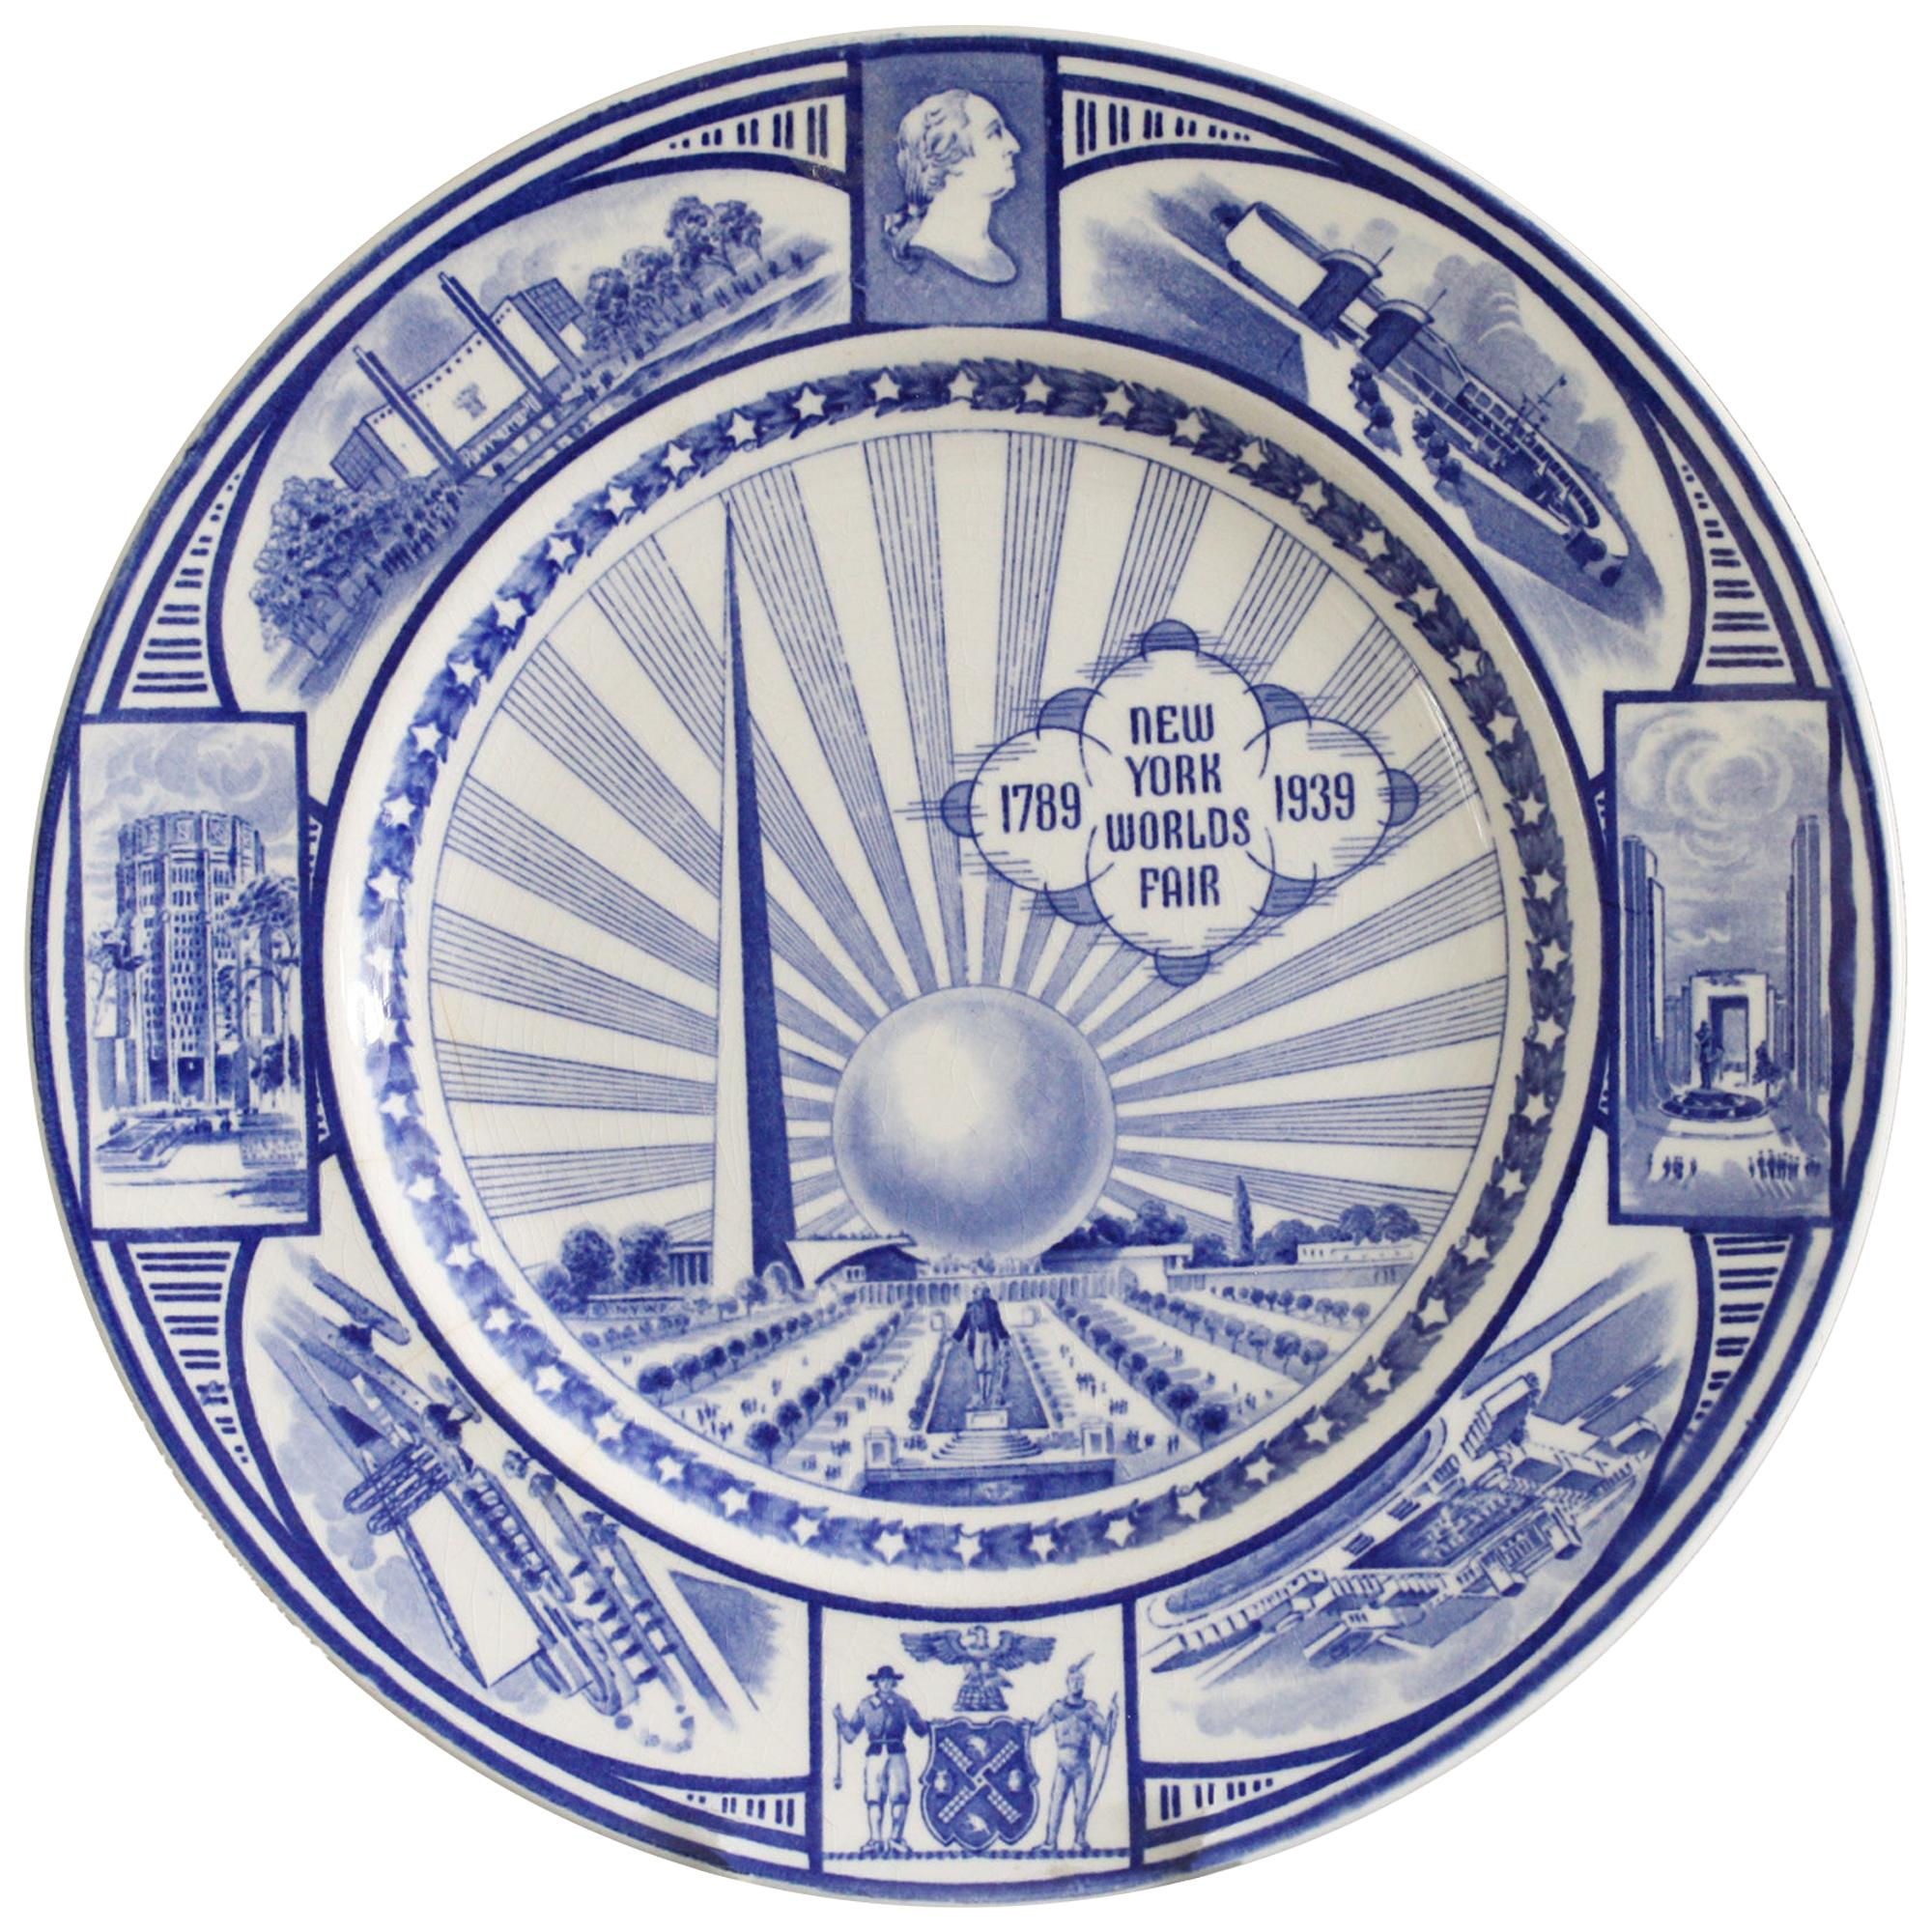 J & G Meakin New York Worlds Fair Commemorative Pottery Plate, 1939